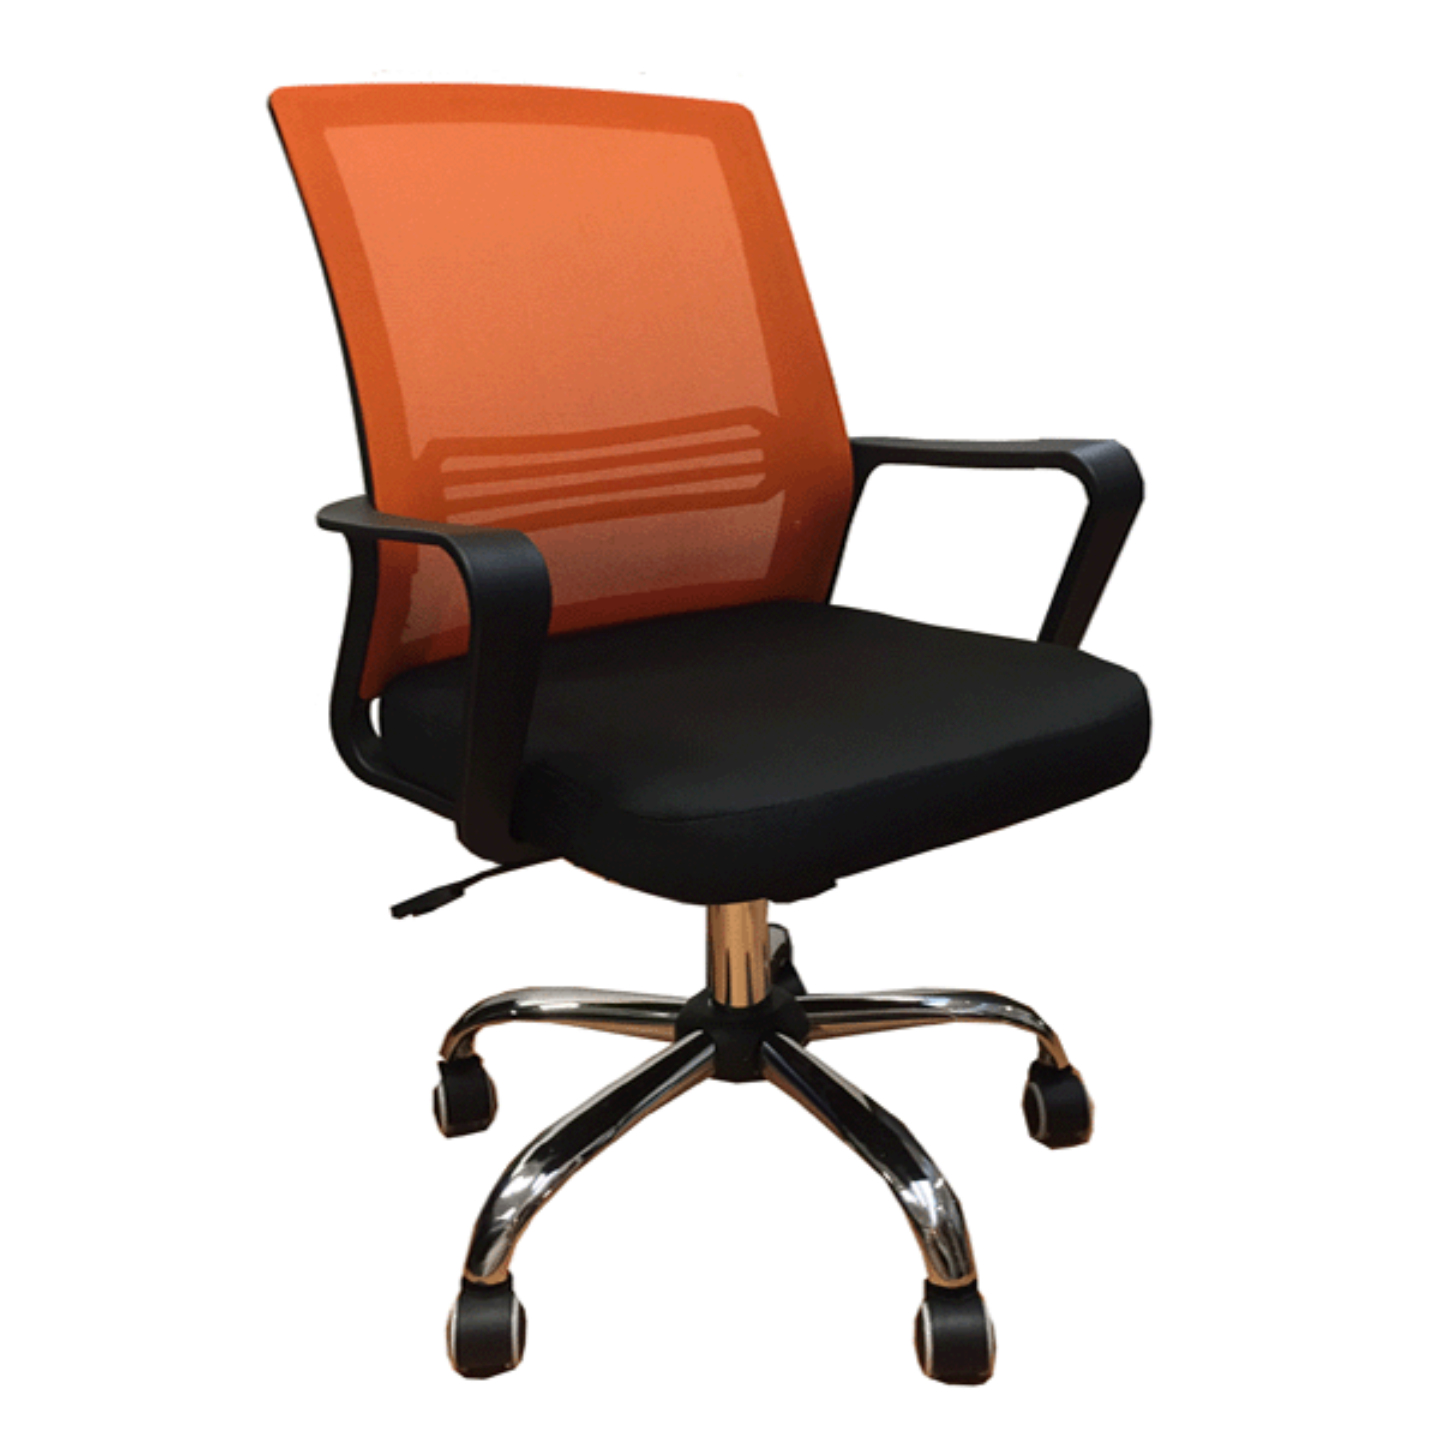 QUARTZ II Mesh Chair (Orange)